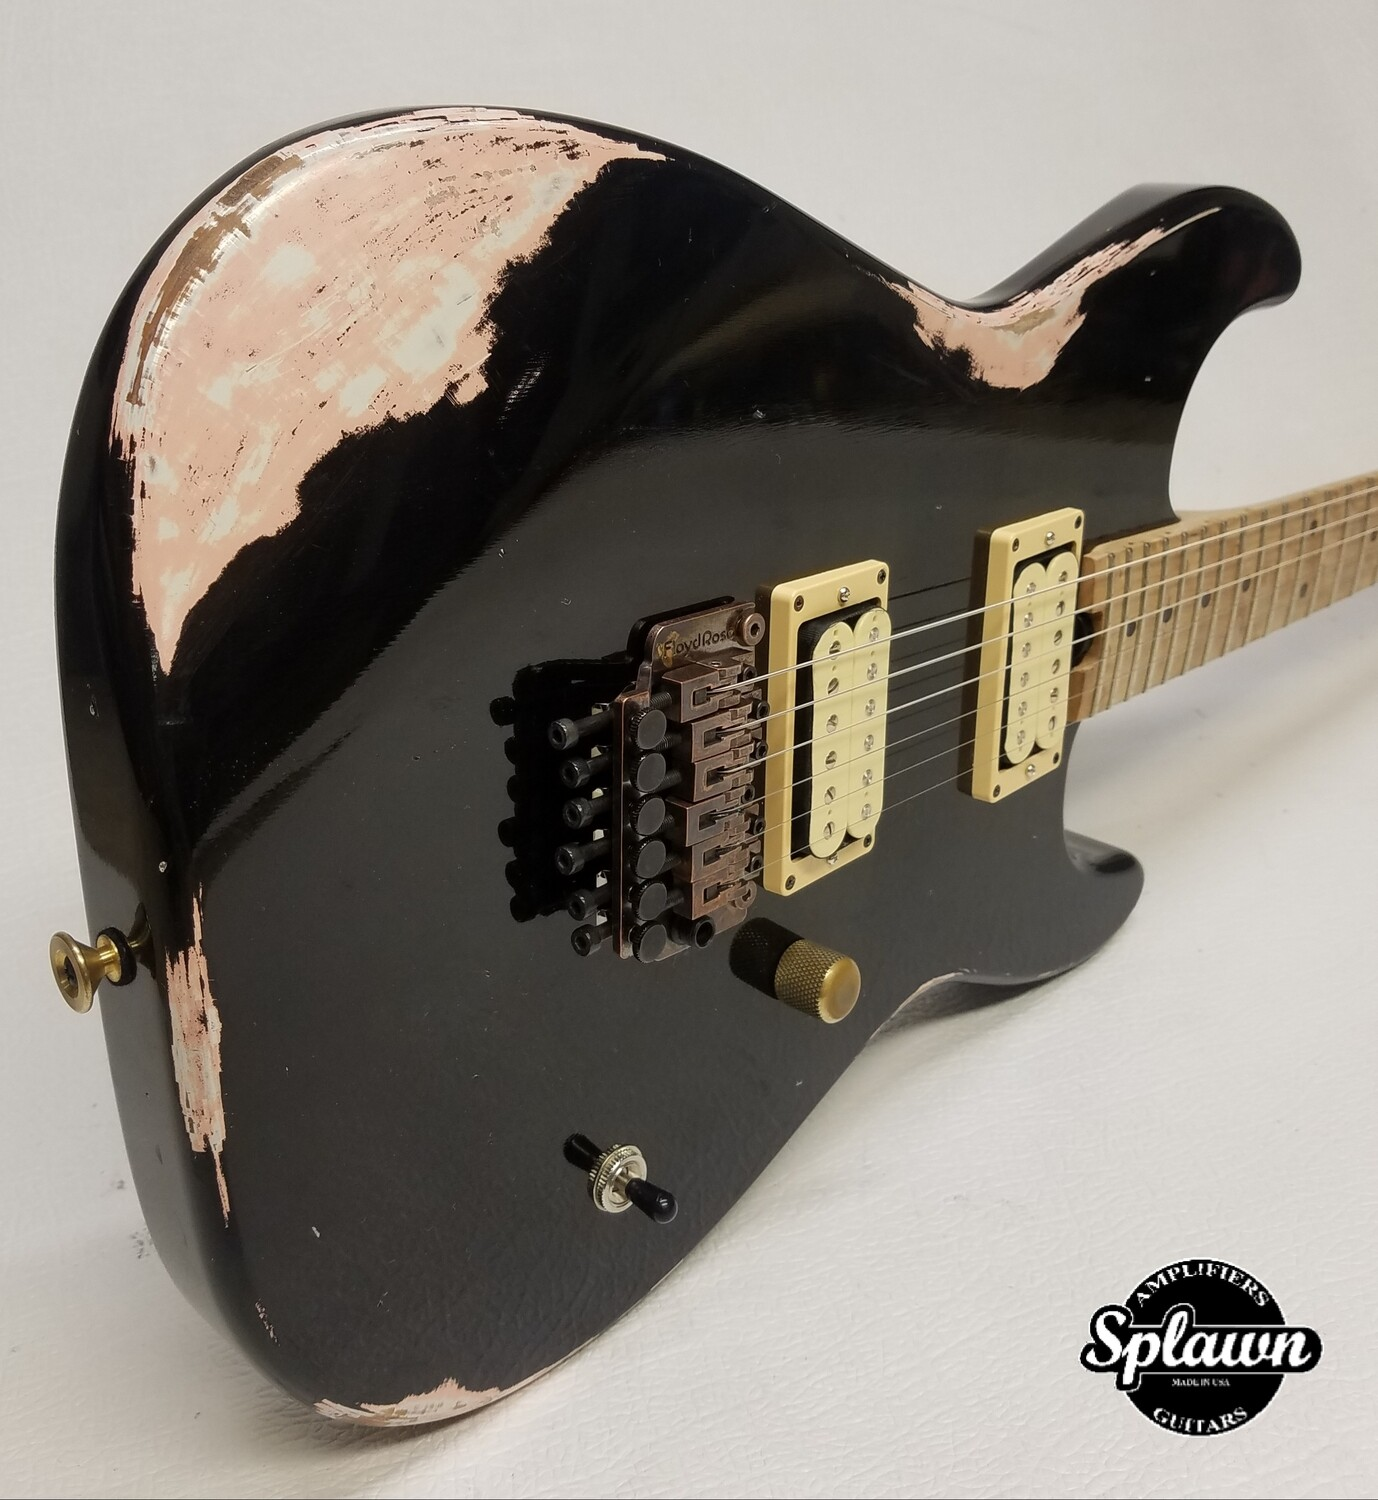 Splawn SS1 Guitar Nitro Relic Black over Shell Pink